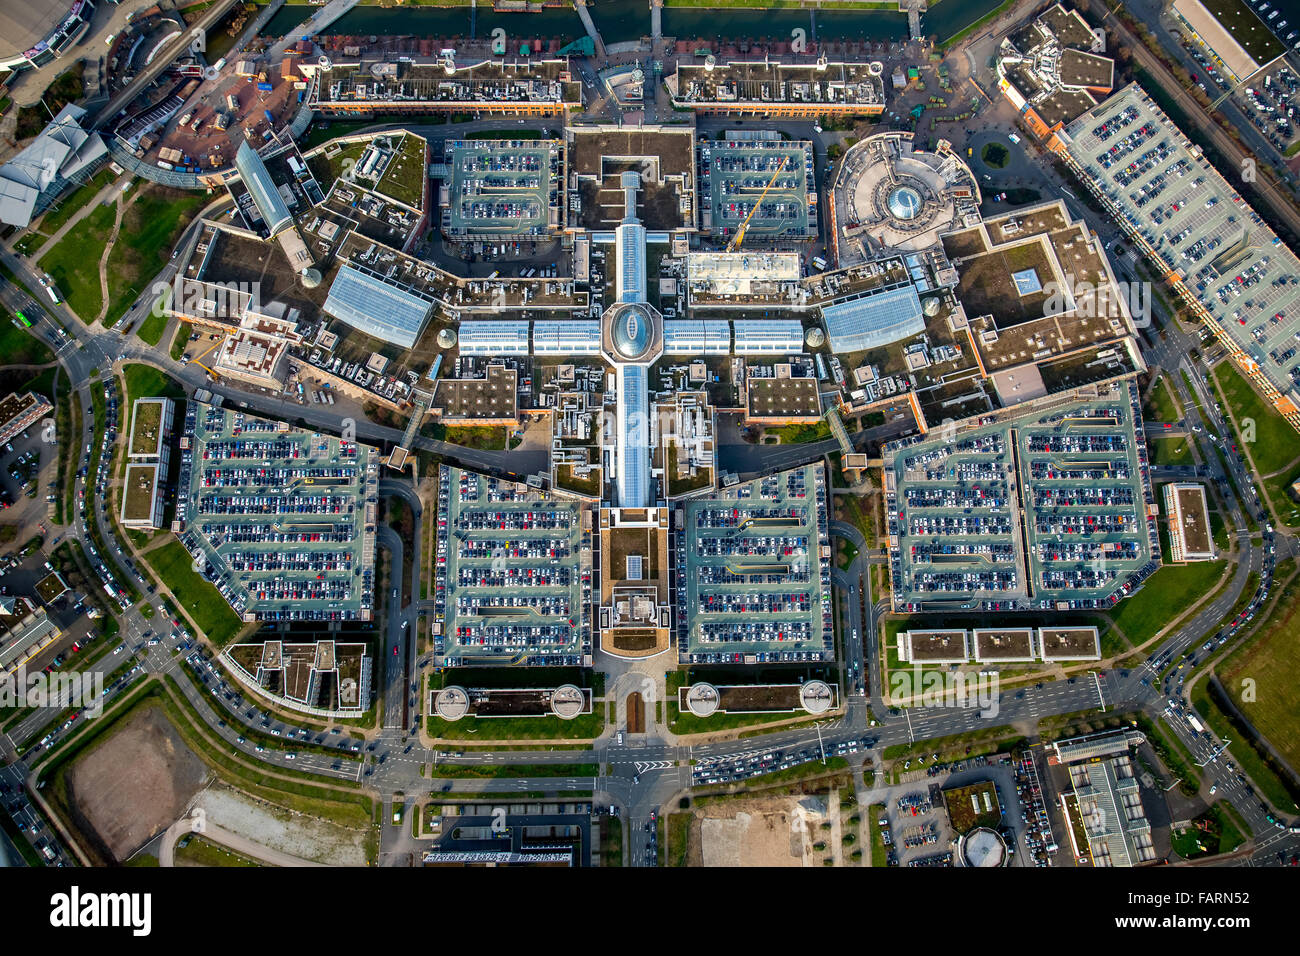 aerial view shopping mall centro oberhausen shopping mall largest stock photo 92719902 alamy. Black Bedroom Furniture Sets. Home Design Ideas